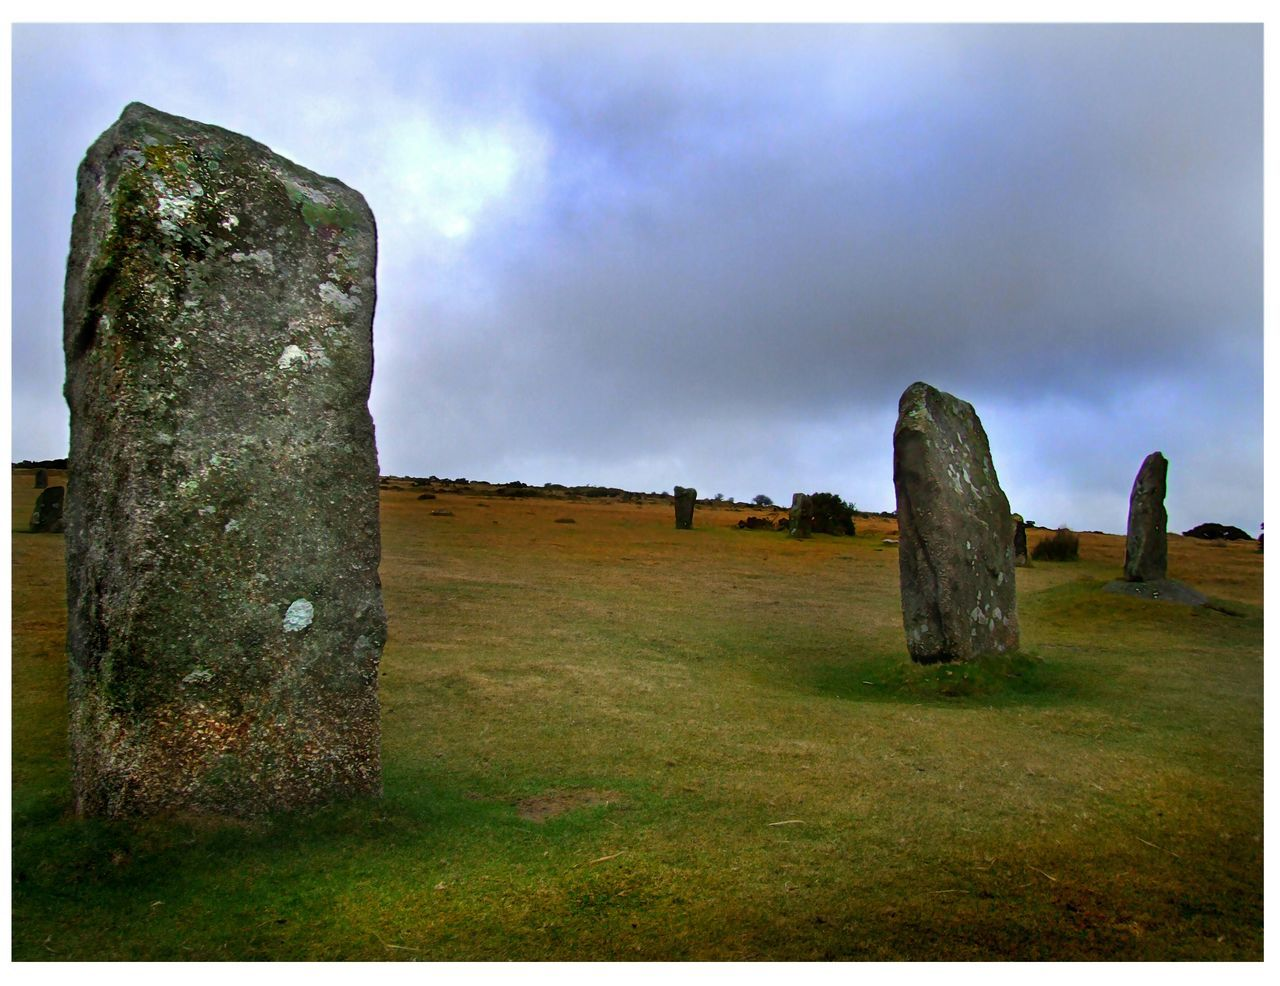 The Hurlers 3 The Hurlers Moors Rocks Ancient Monument Stone Circle Minions Cornwall Dramatic Bodmin Moor